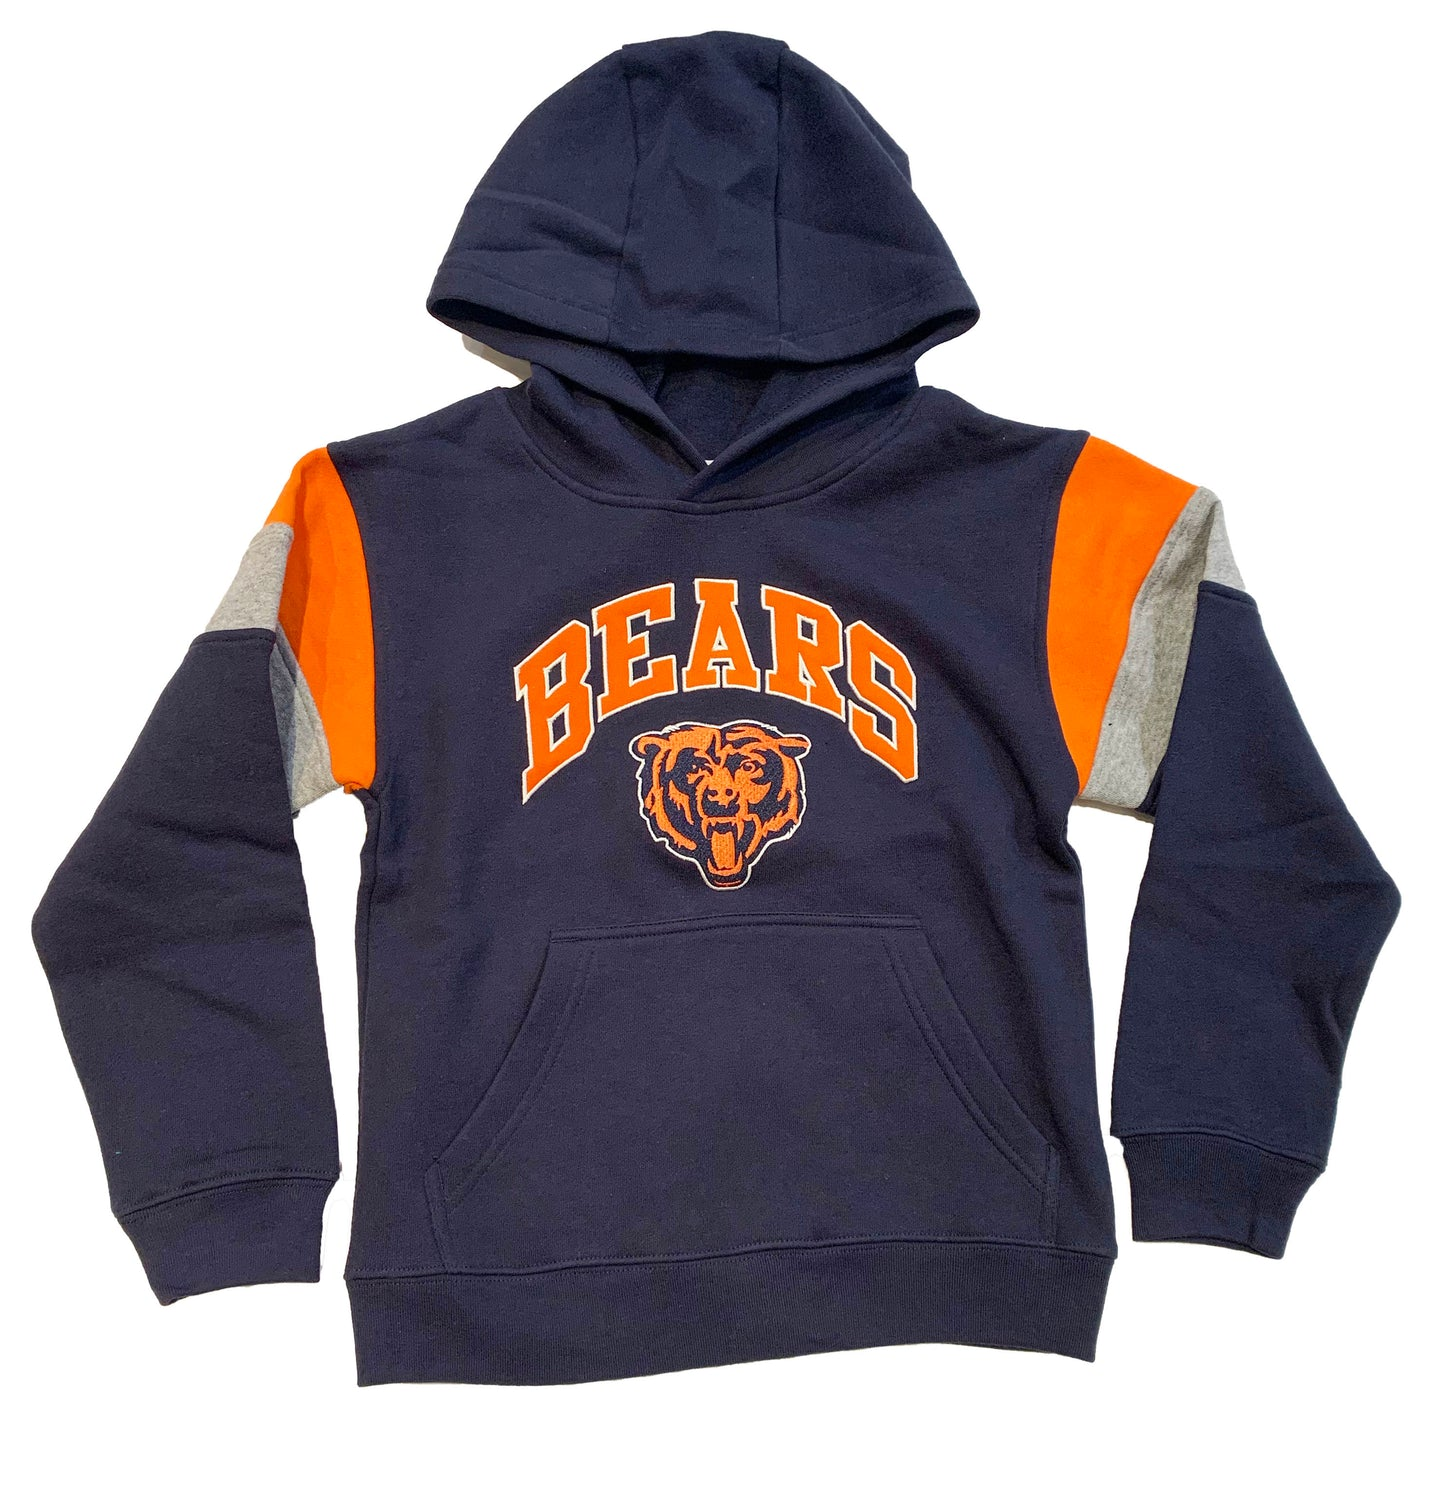 Bears Pocket Hoody